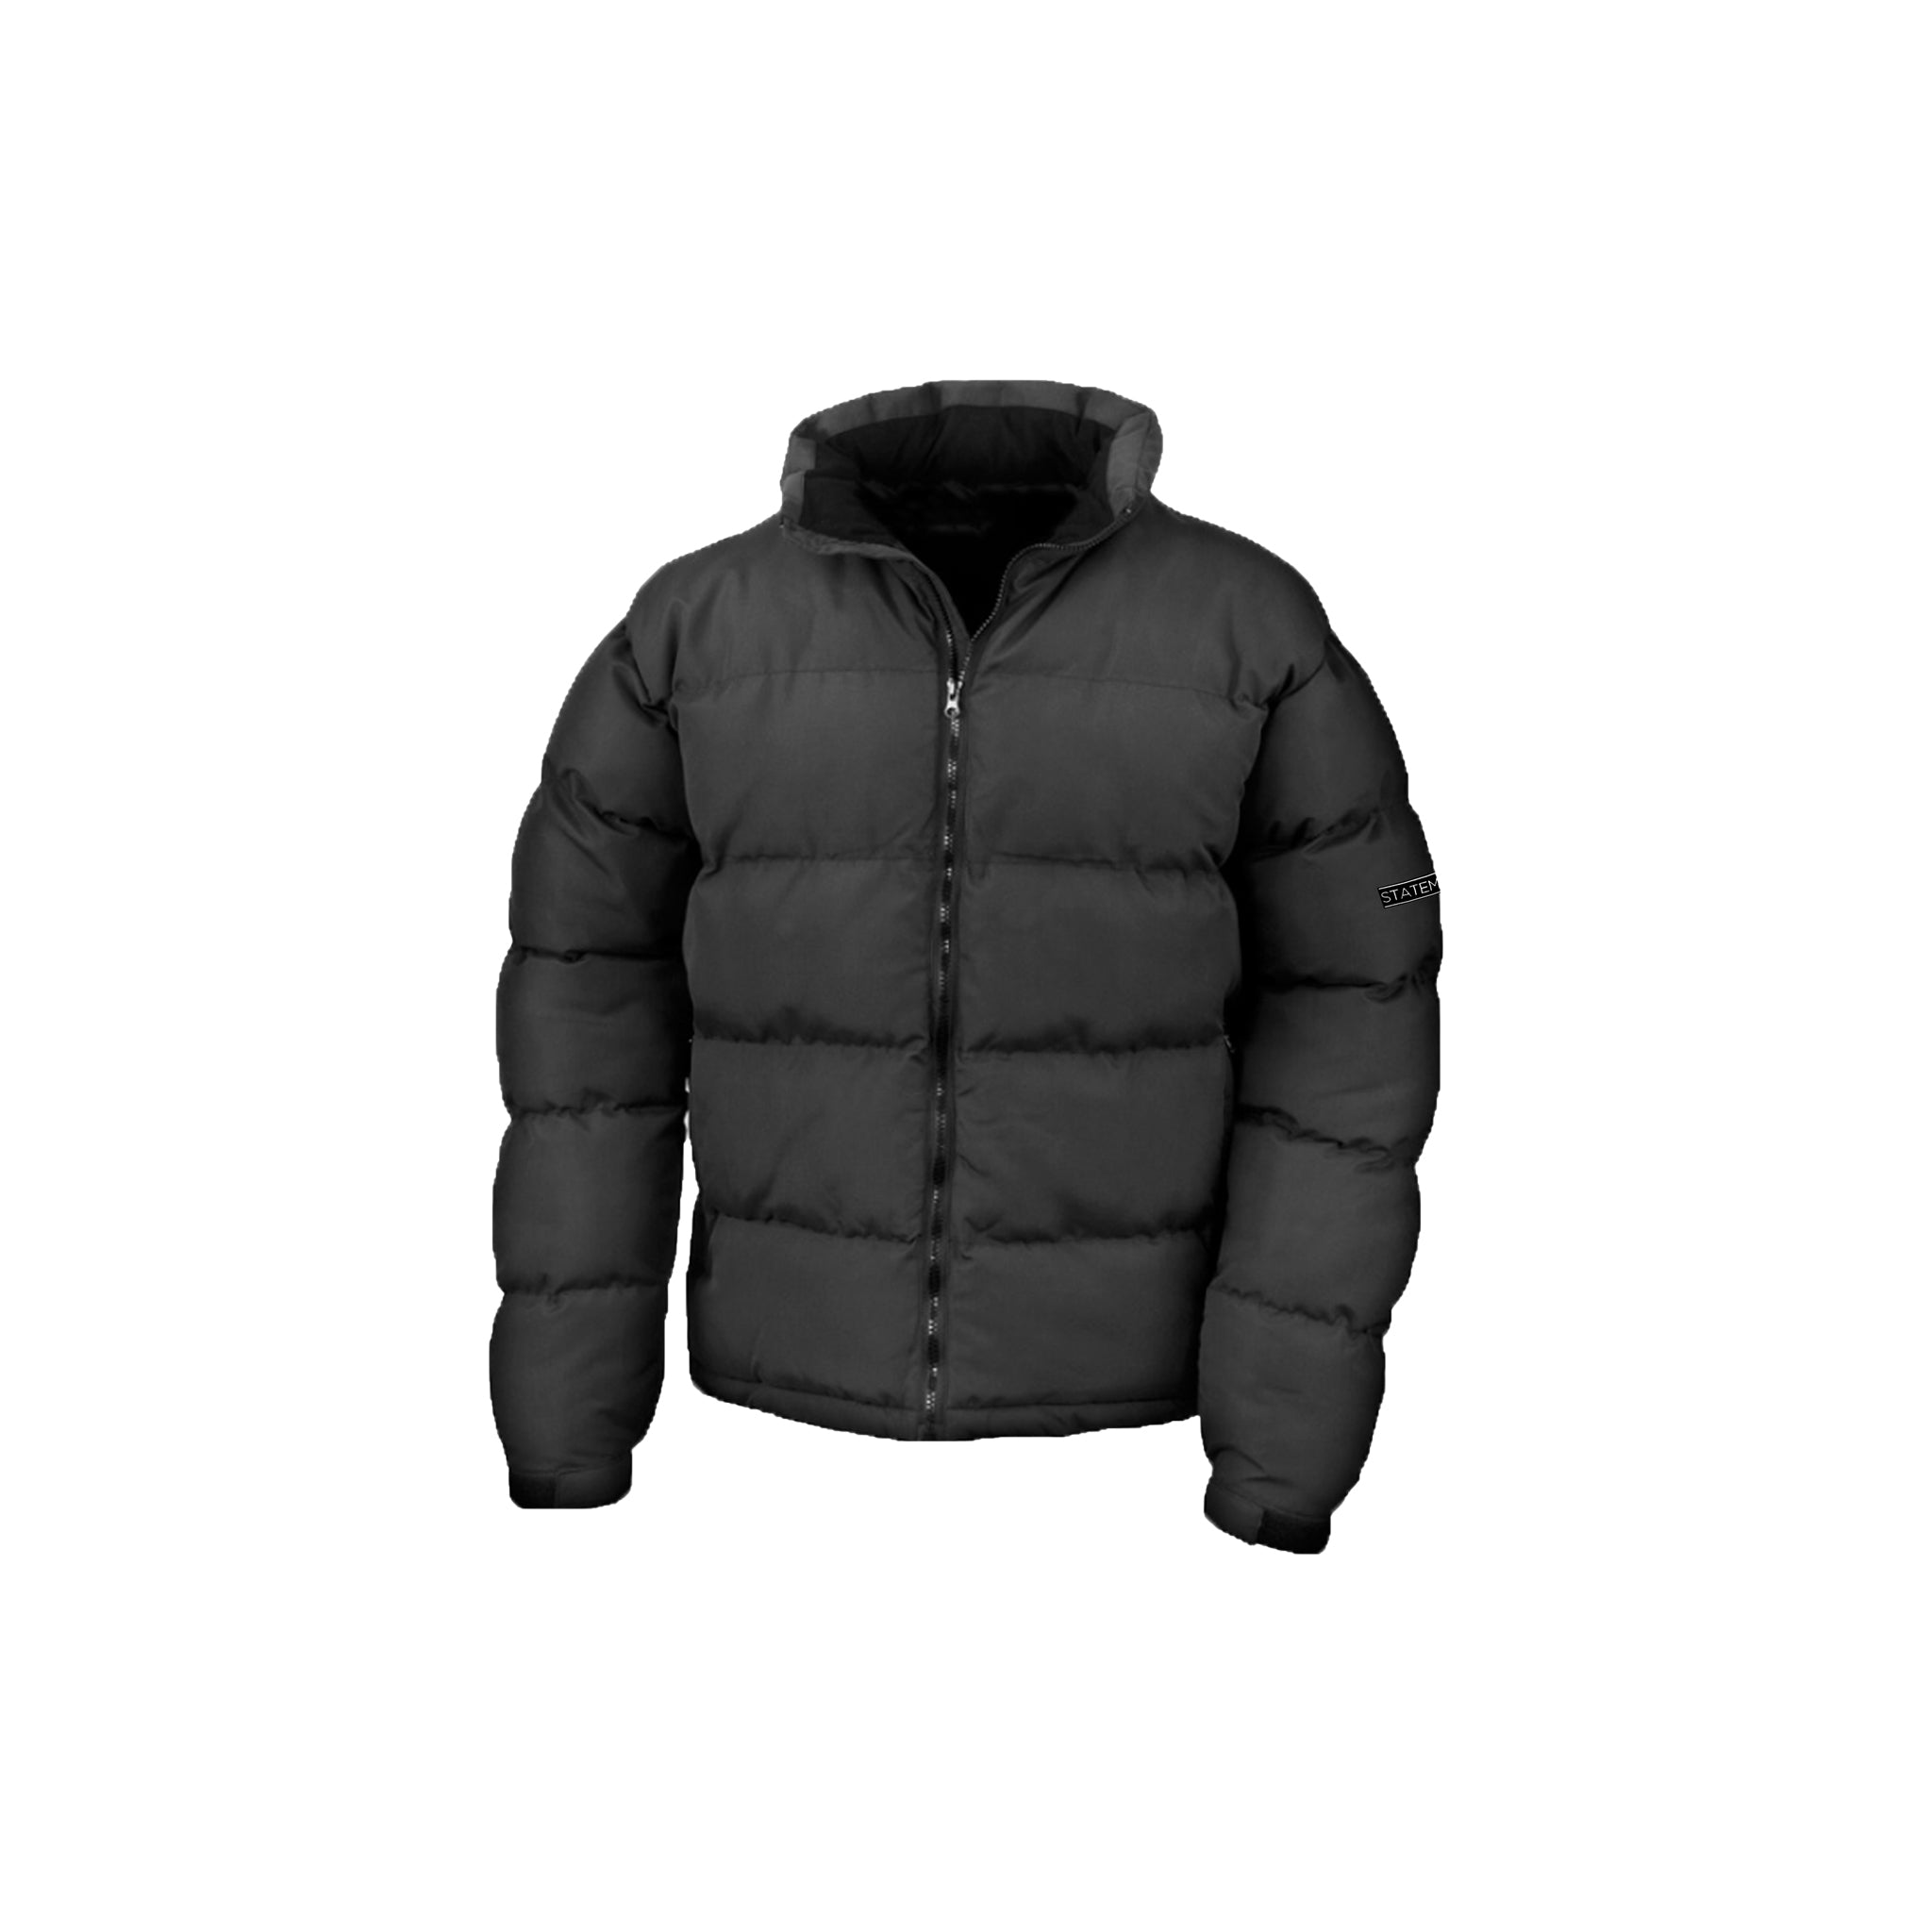 STATEMEANT PUFFER JACKET